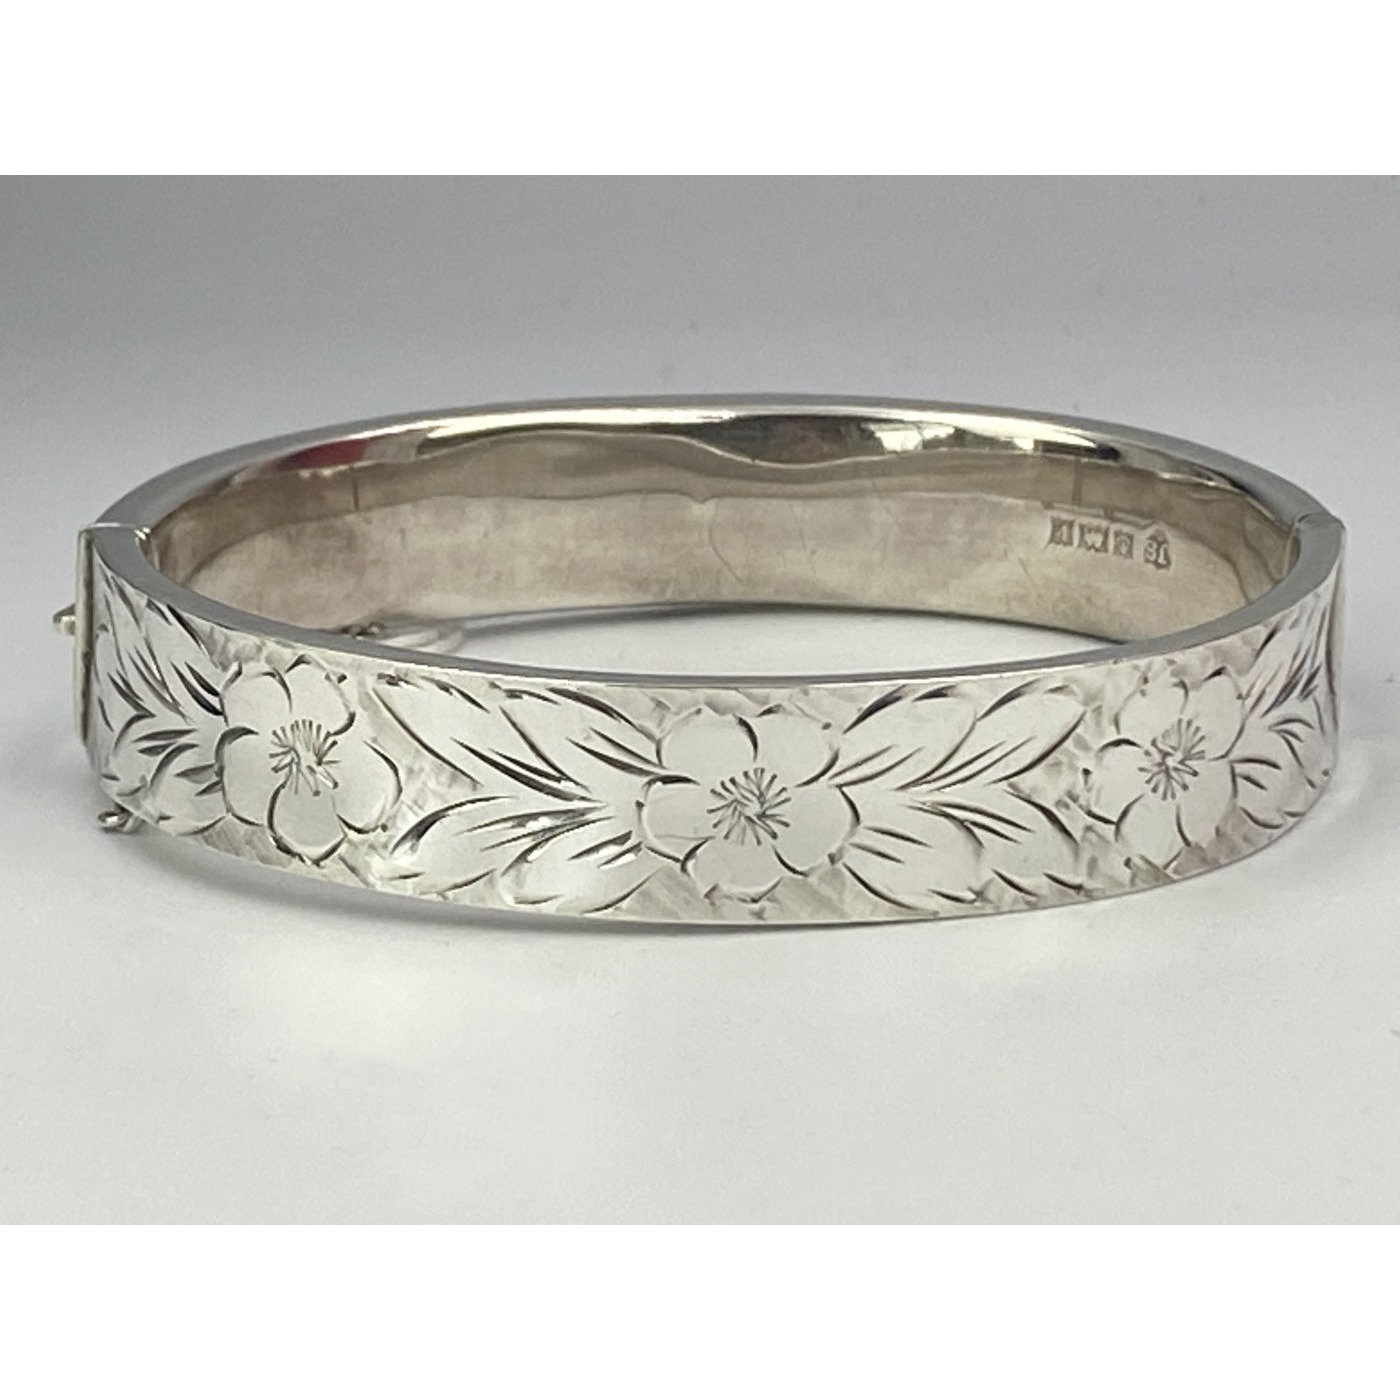 Flower Link Silver Bracelet with Silver Studded Open Heart Charm with Alternating Flower Links and Silver Swirls Bracelet